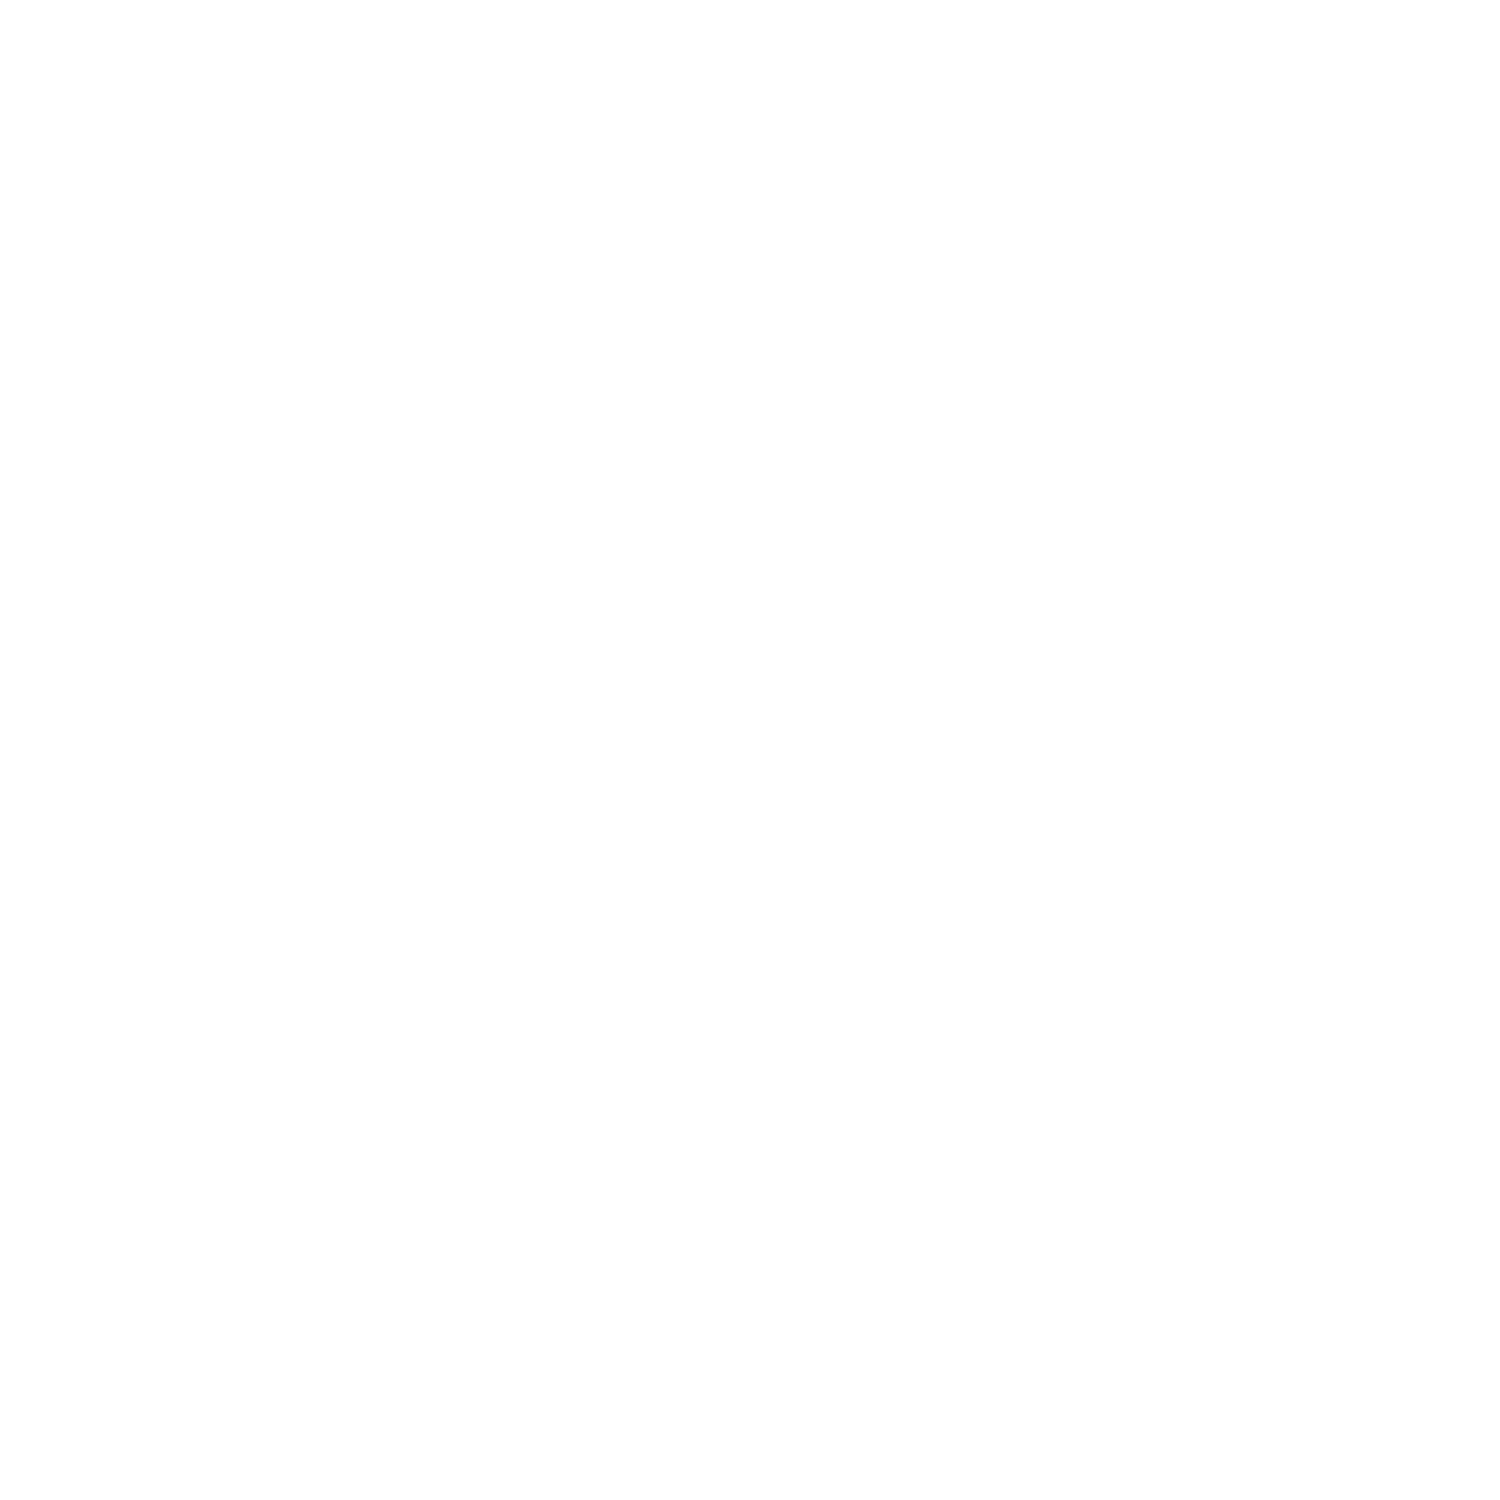 YOUTH v GOV